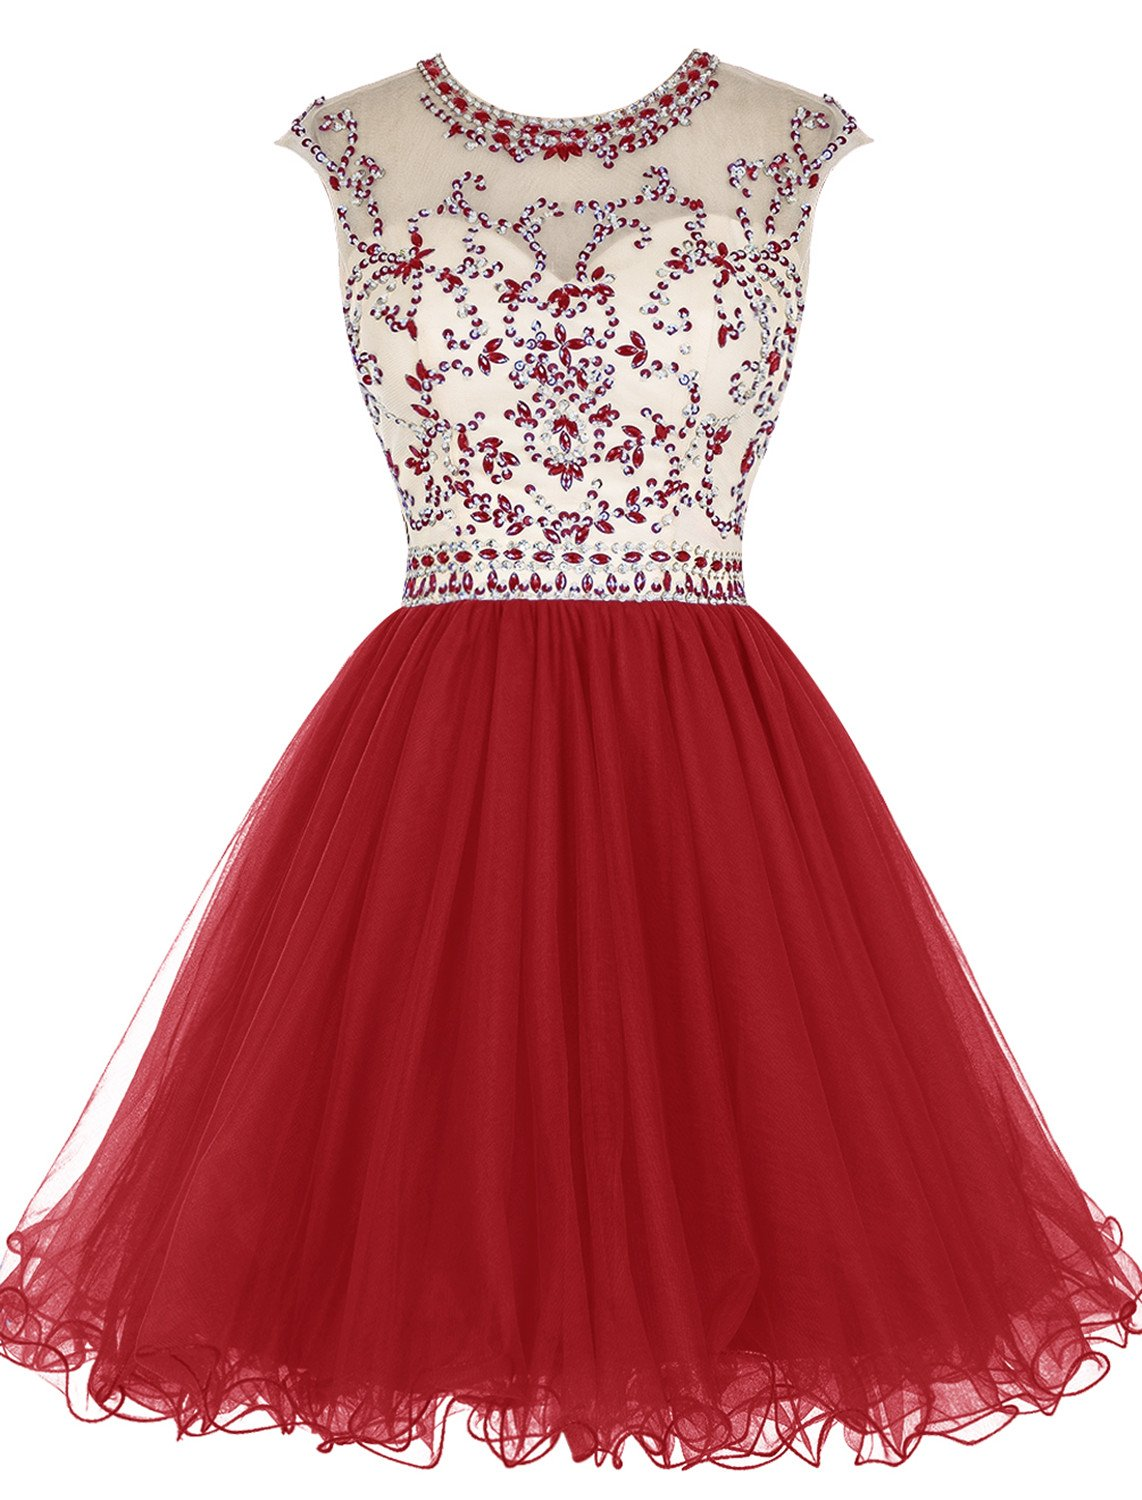 ALAGIRLS Beaded Prom Dress Short Tulle Homecoming Dress Hollow Back Red US22Plus